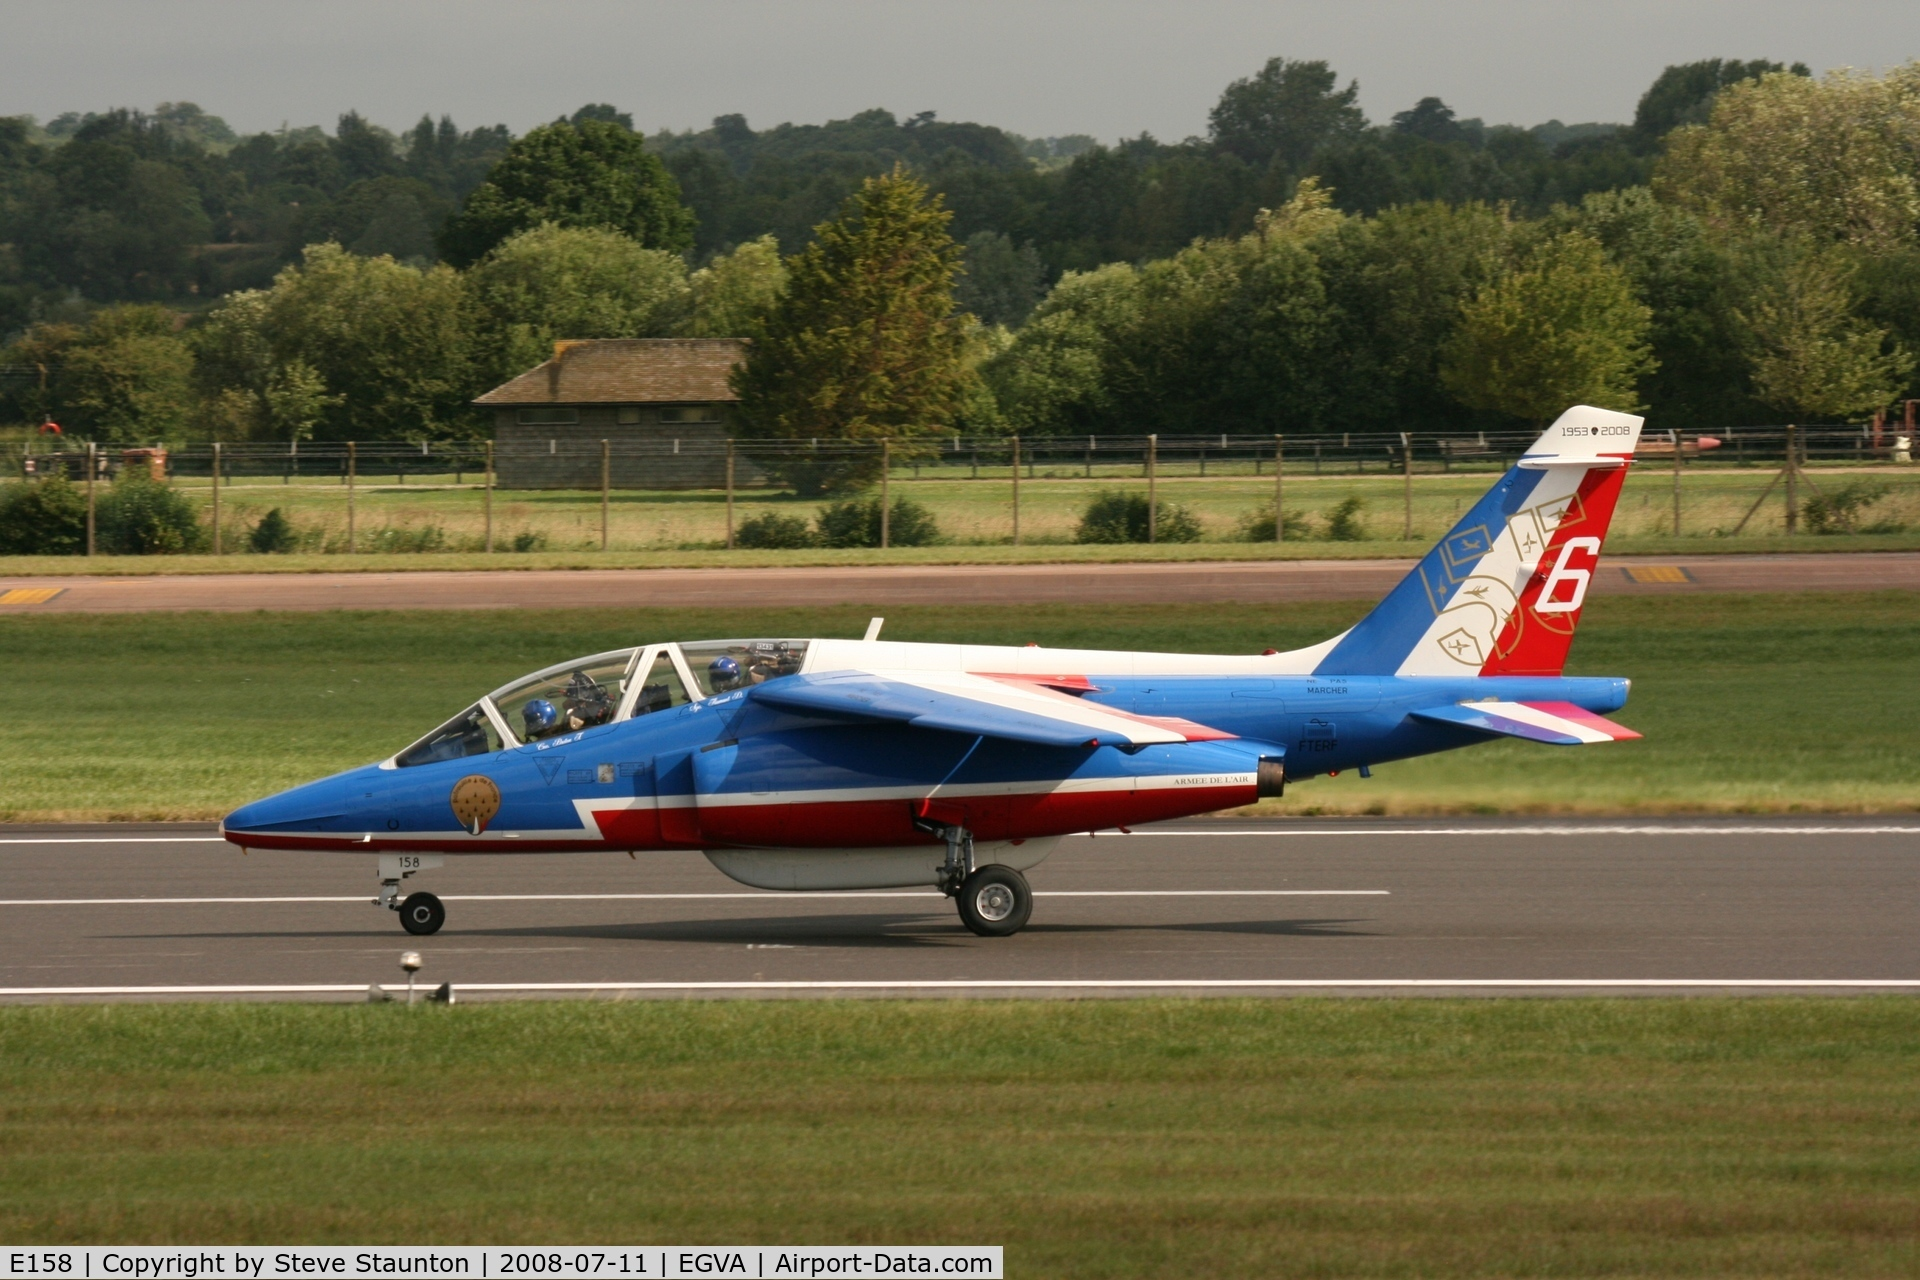 E158, Dassault-Dornier Alpha Jet E C/N E158, Taken at the Royal International Air Tattoo 2008 during arrivals and departures (show days cancelled due to bad weather)